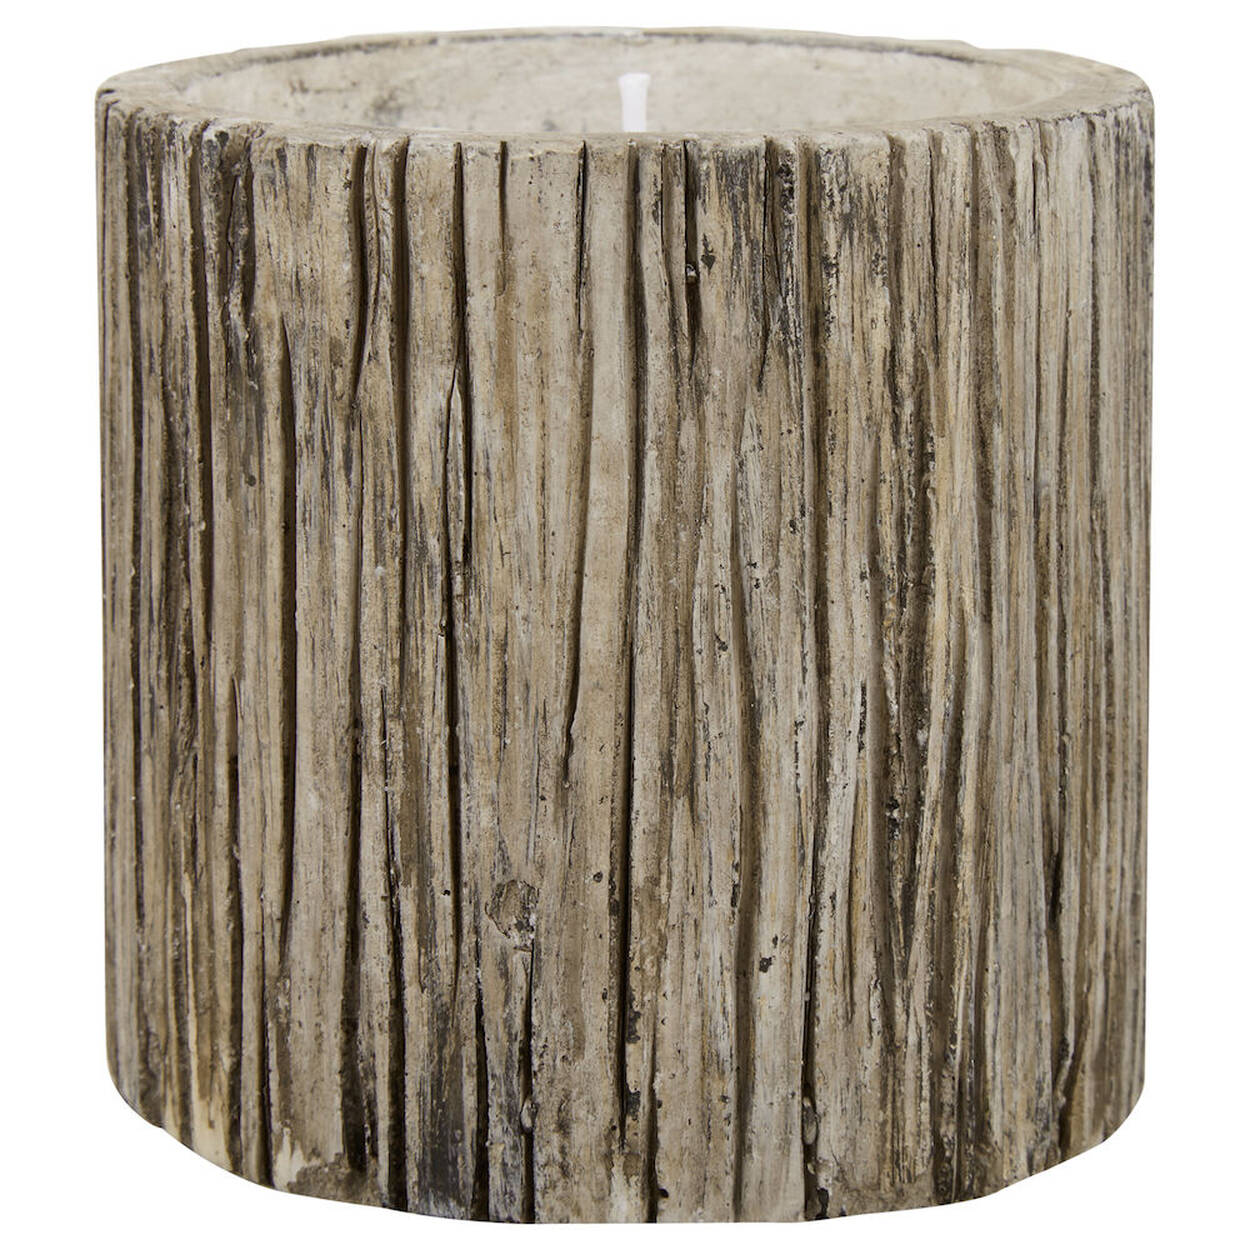 Cement Wood-Like Candle